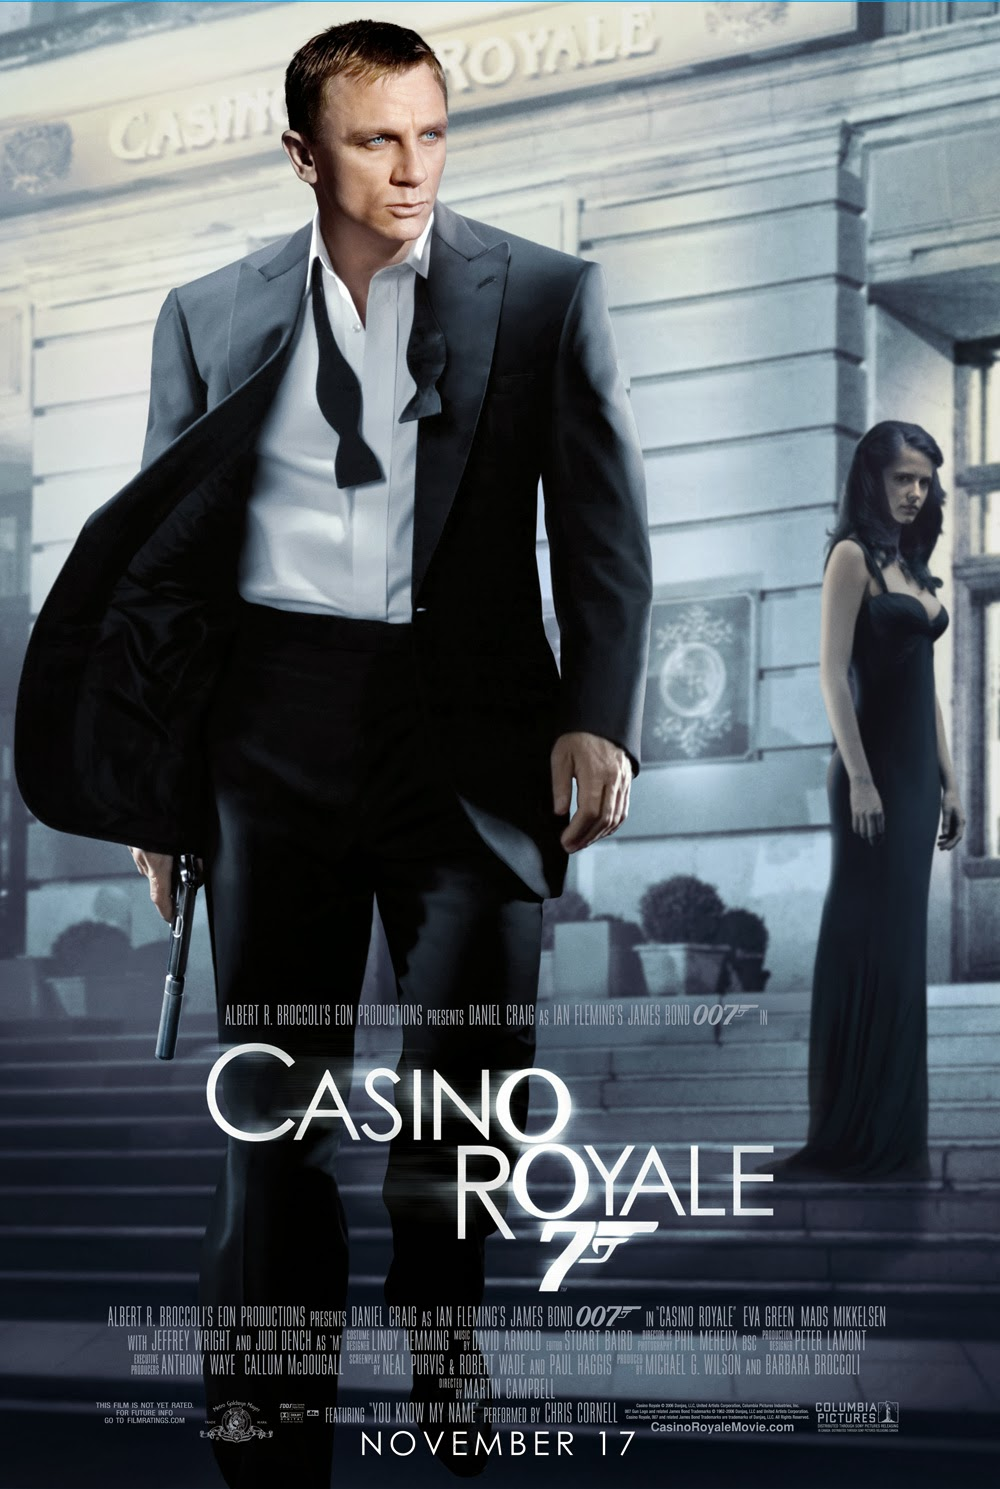 james bond casino royale full movie online online casino.com